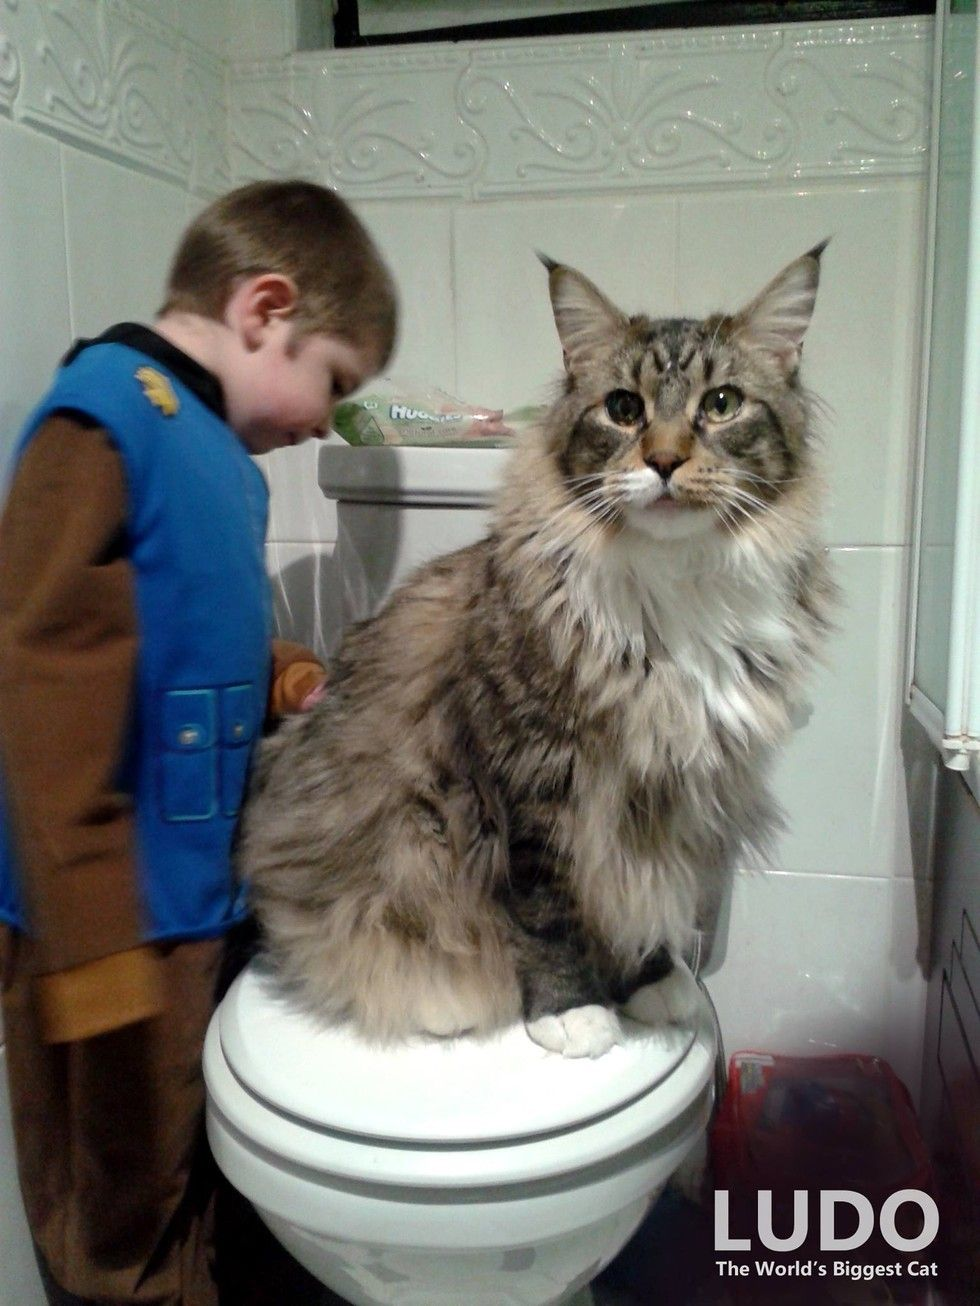 meet ludo a three year old maine coon who is not only the biggest maine coon in the world he is also the biggest house cat this is an exclusive limited